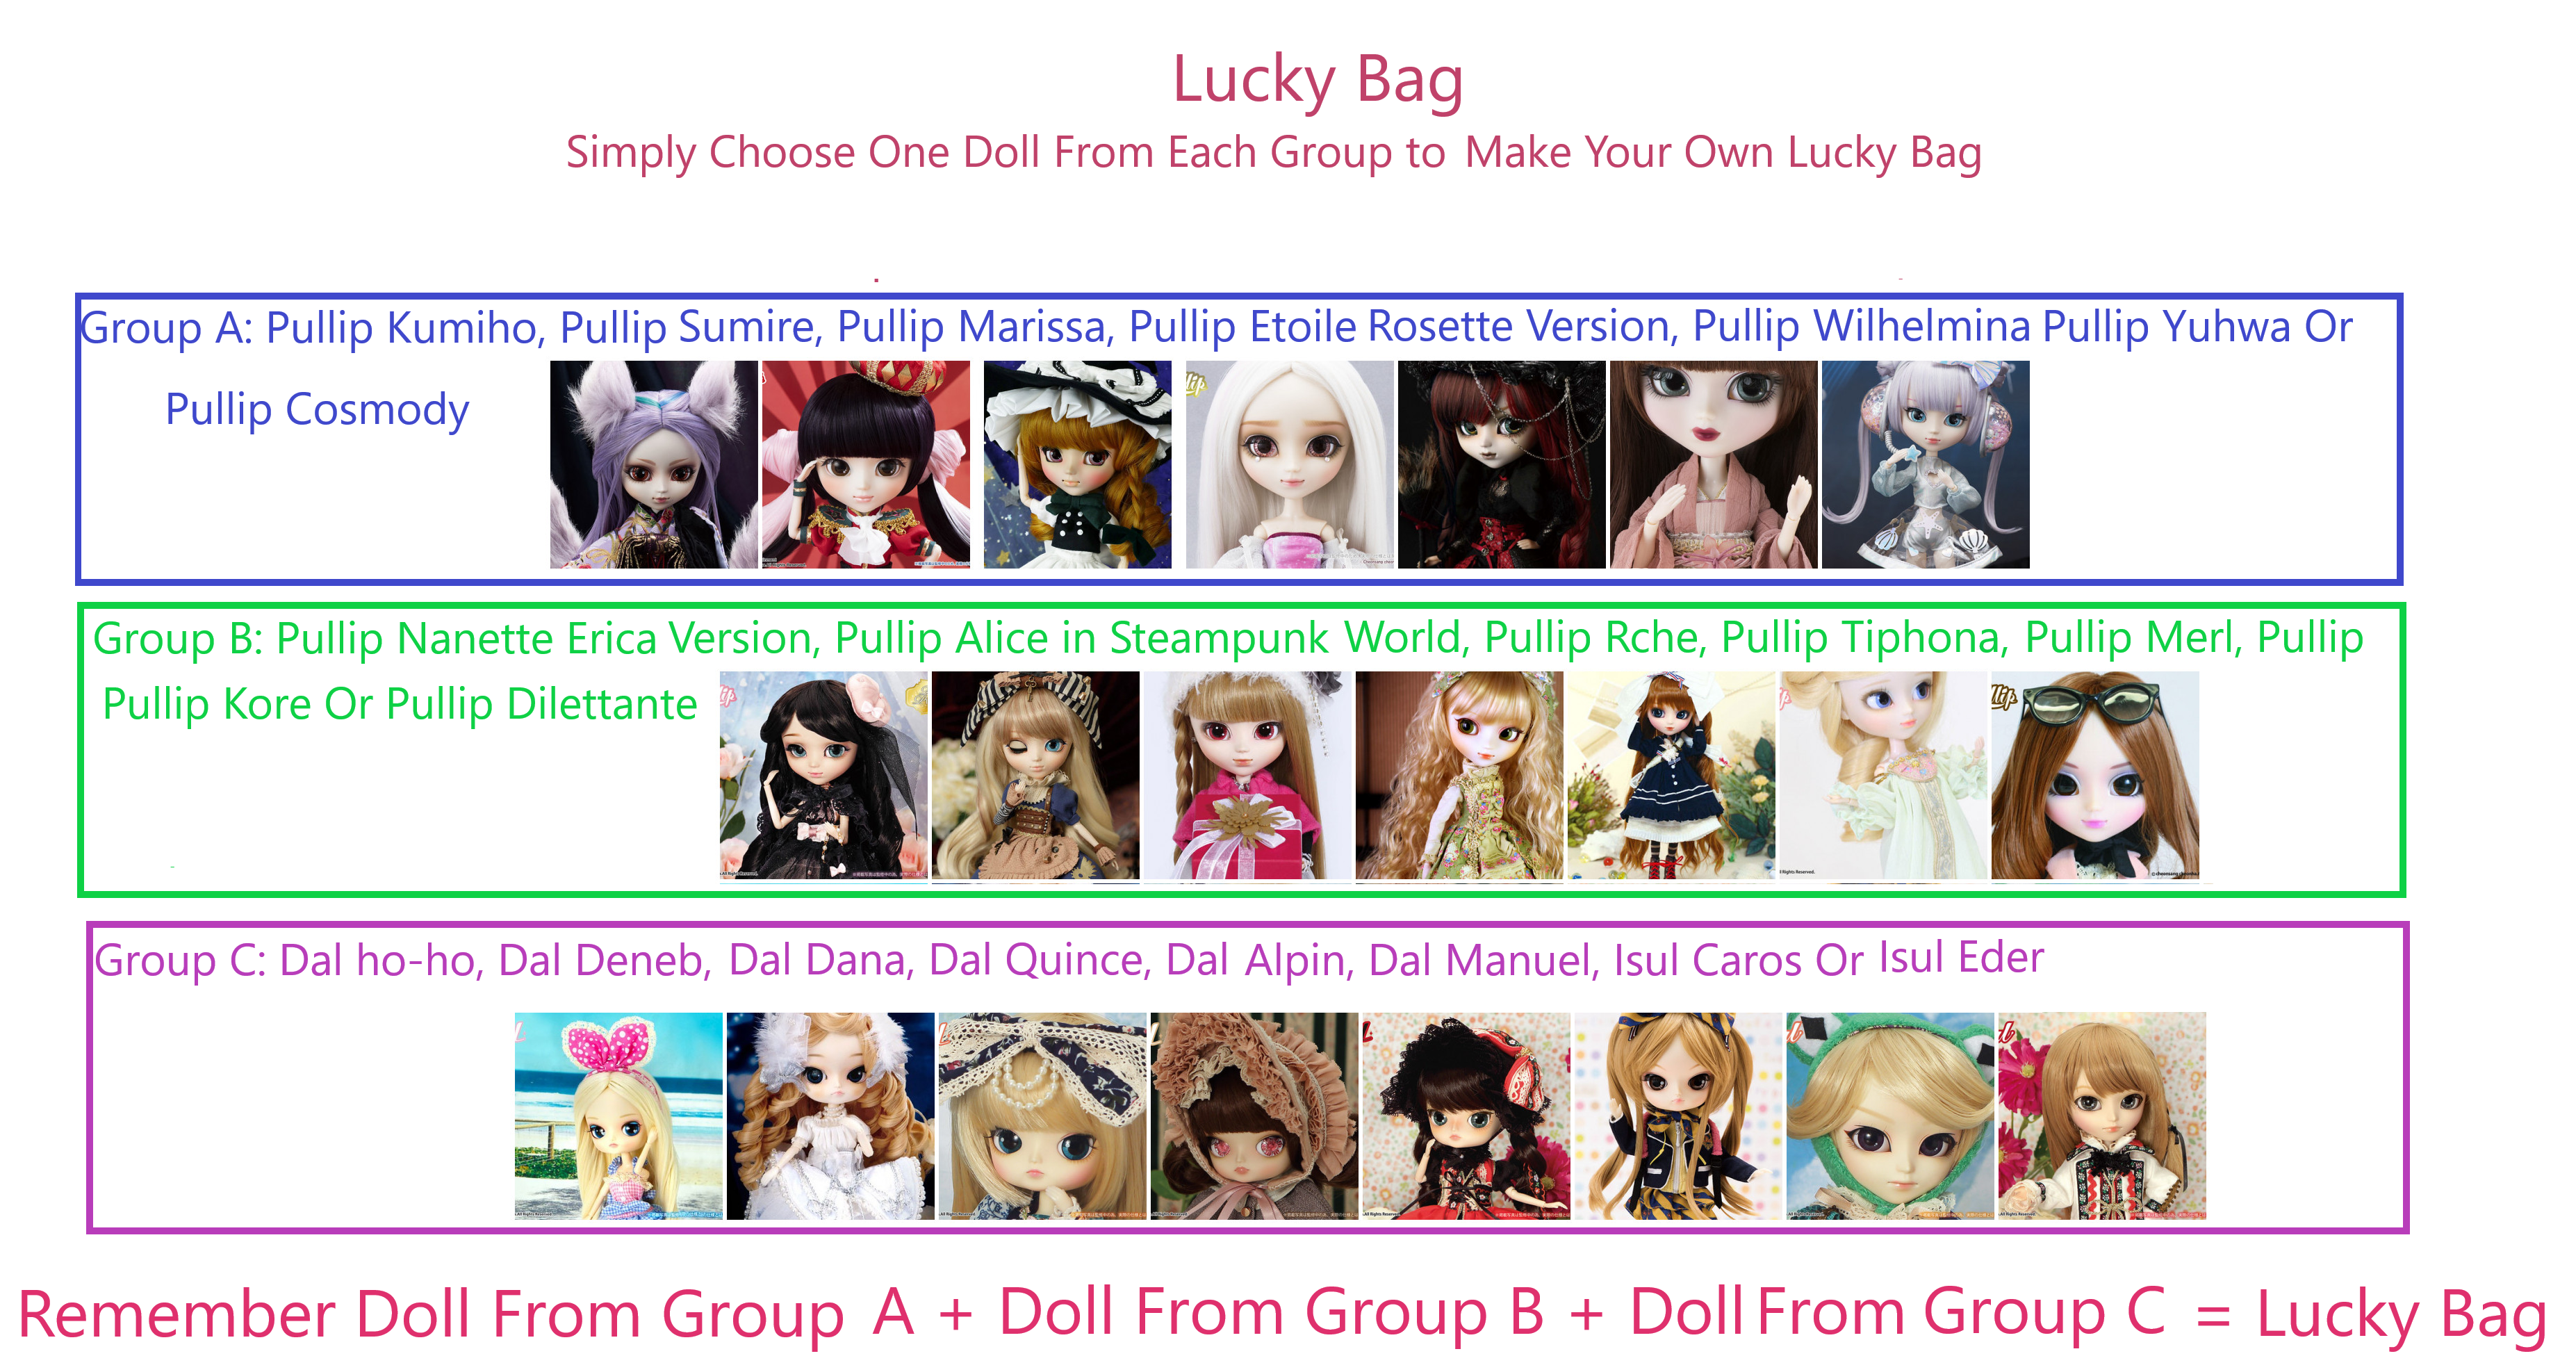 reviseluckybag